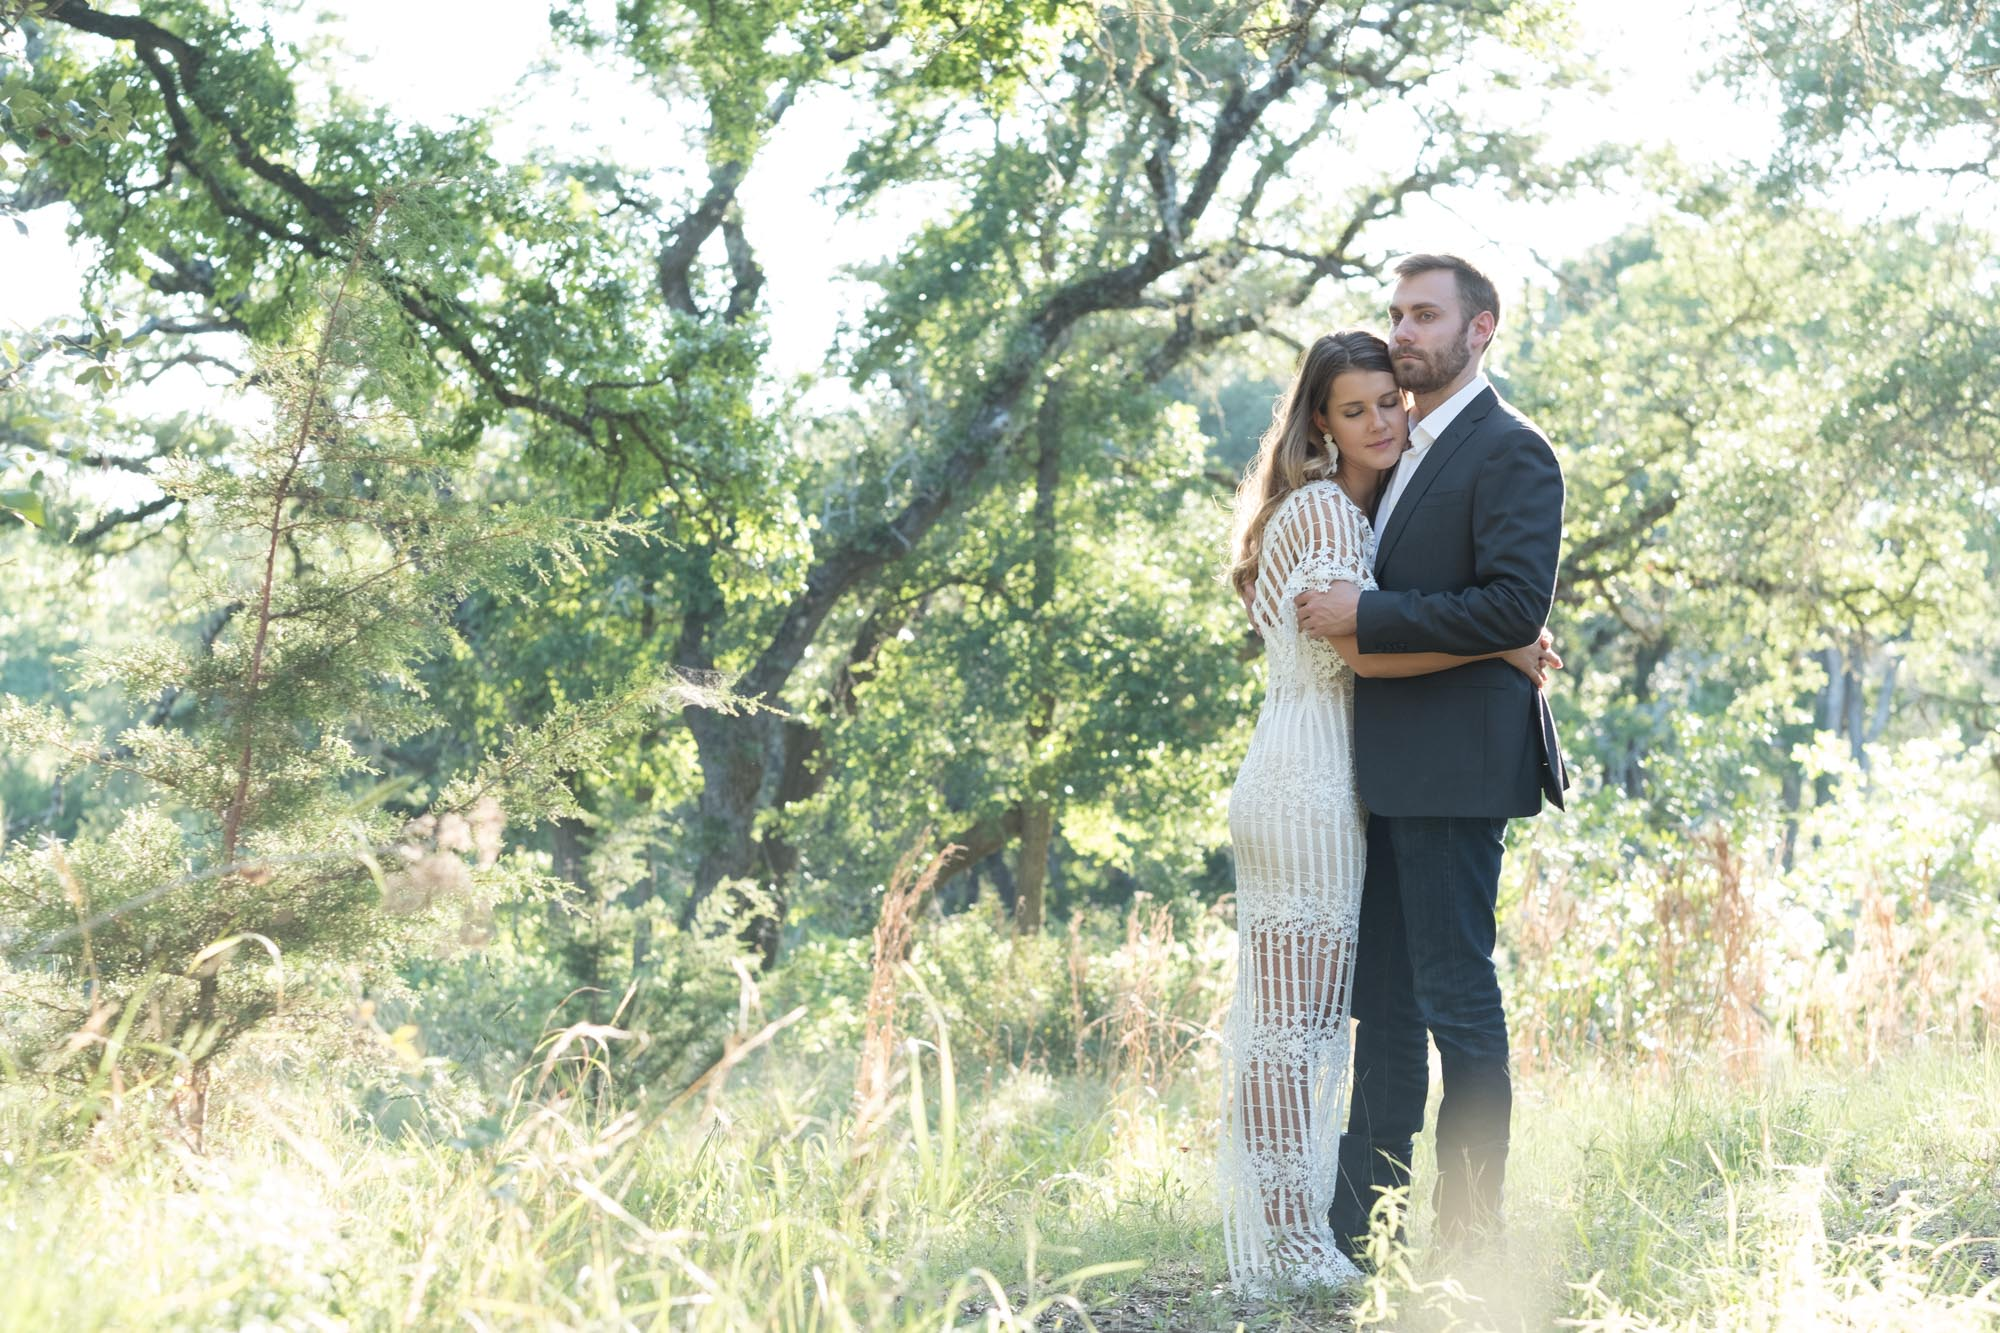 engagement_photography_austin_texas_bailey_toksoz_photography_15.jpg